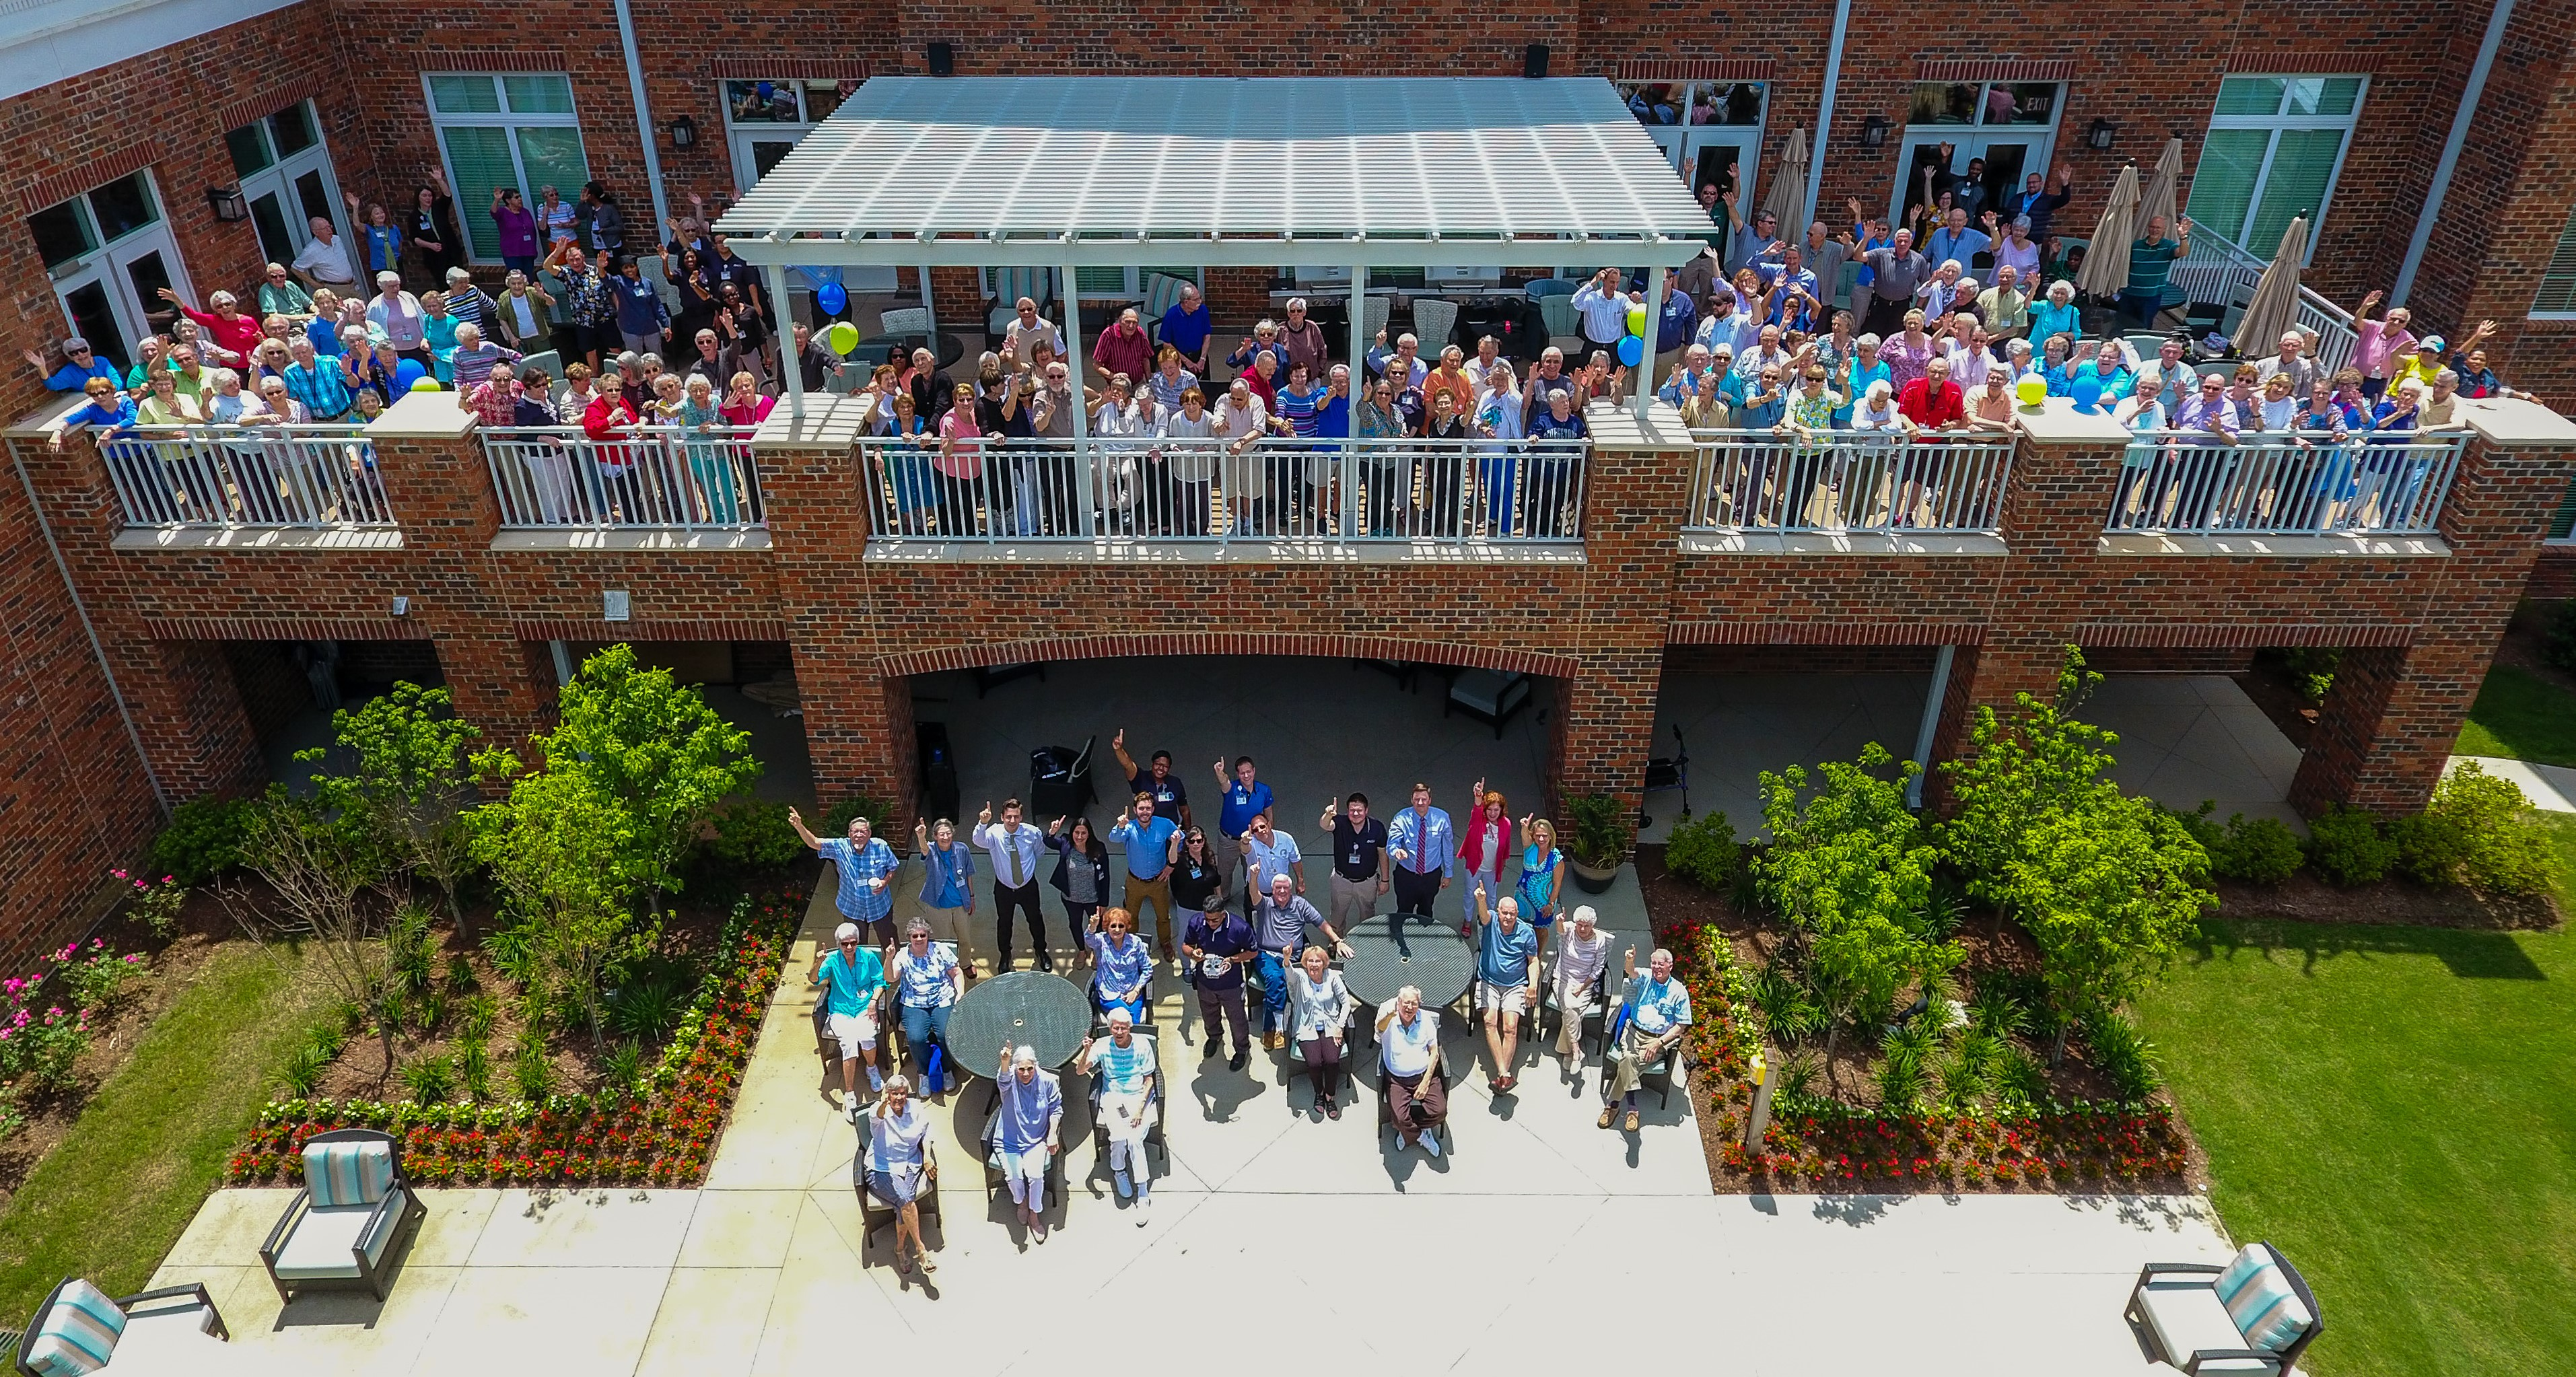 Residents and employees of Windsor Run pose on the deck and patio for a drone photo taken during the first anniversary celebration.